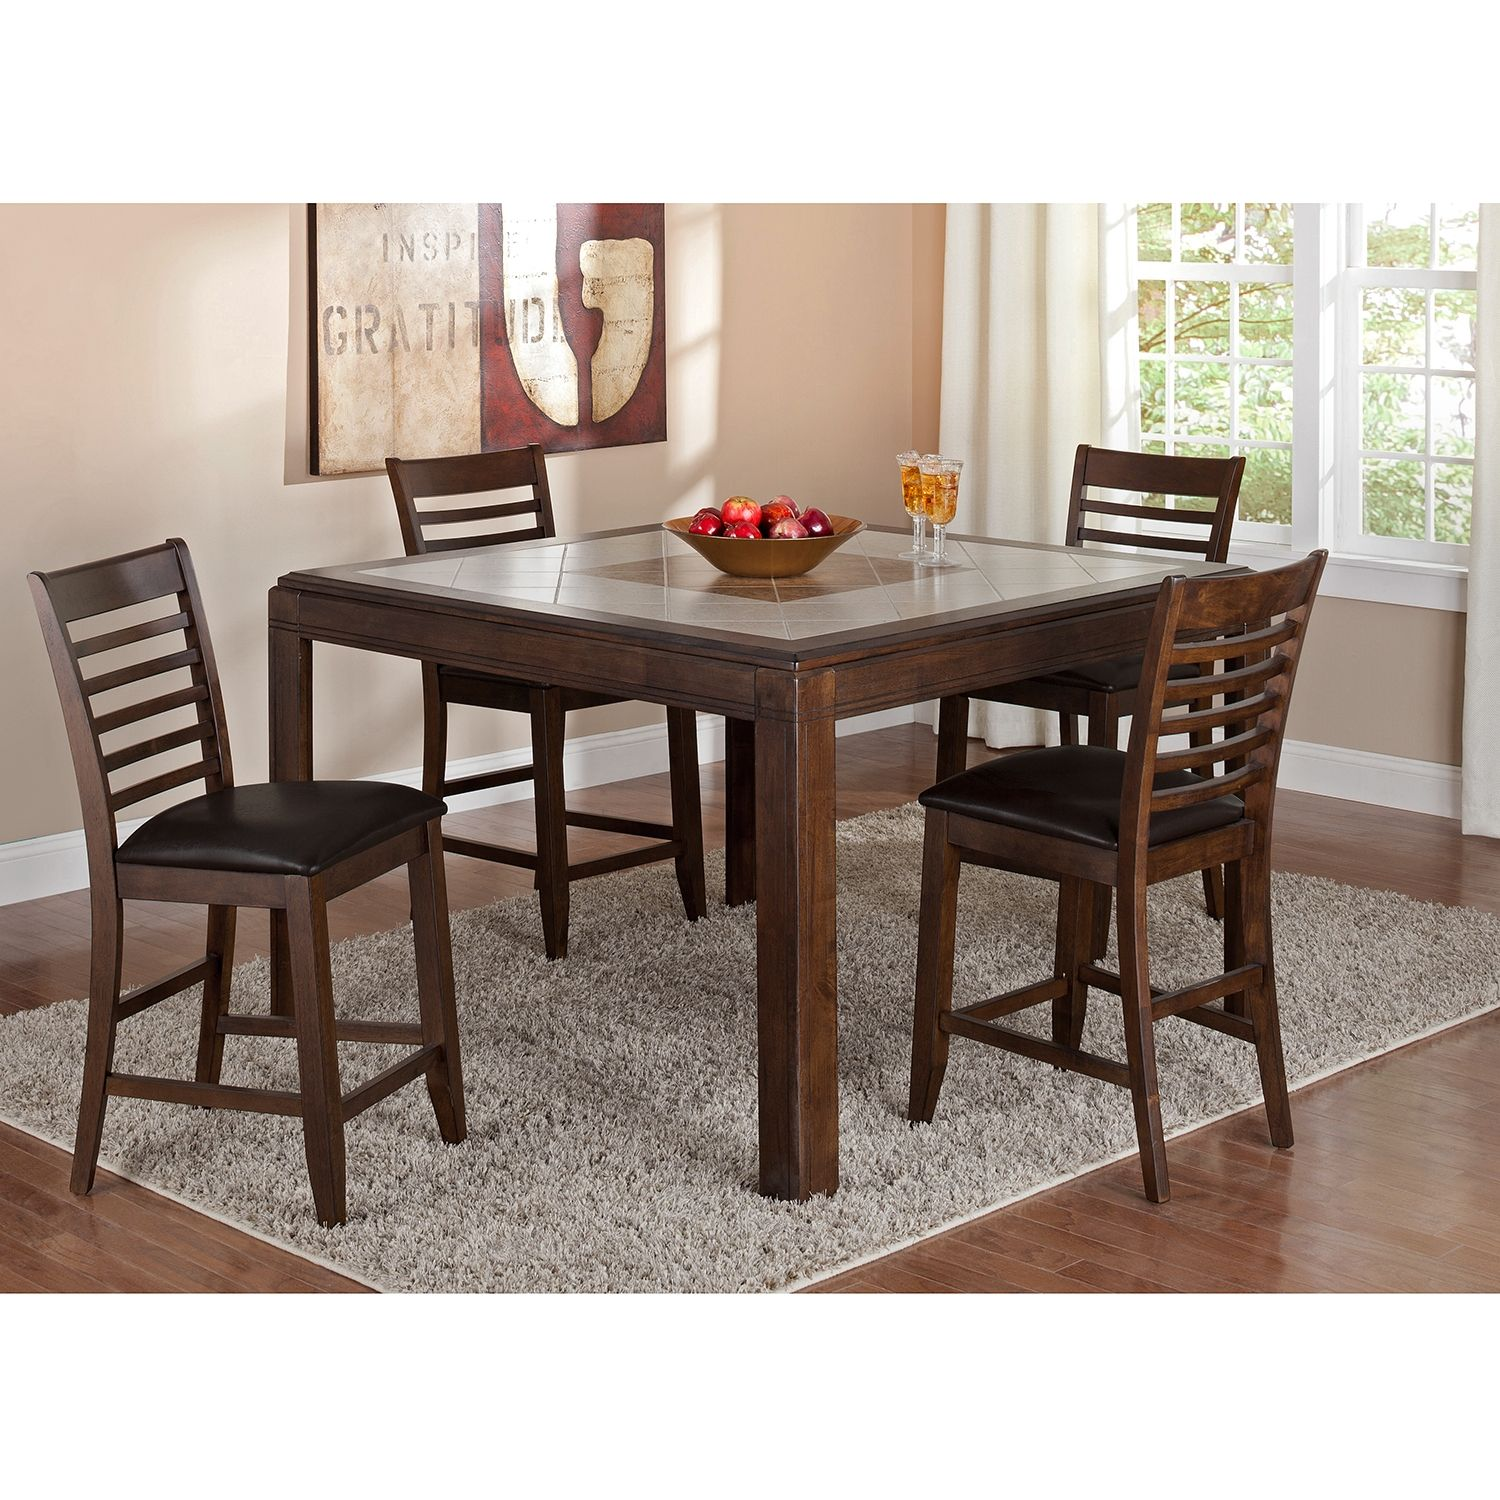 Deer Creek Ii Counter Height Table Dining Room Table Centerpieces Furniture Value City Furniture